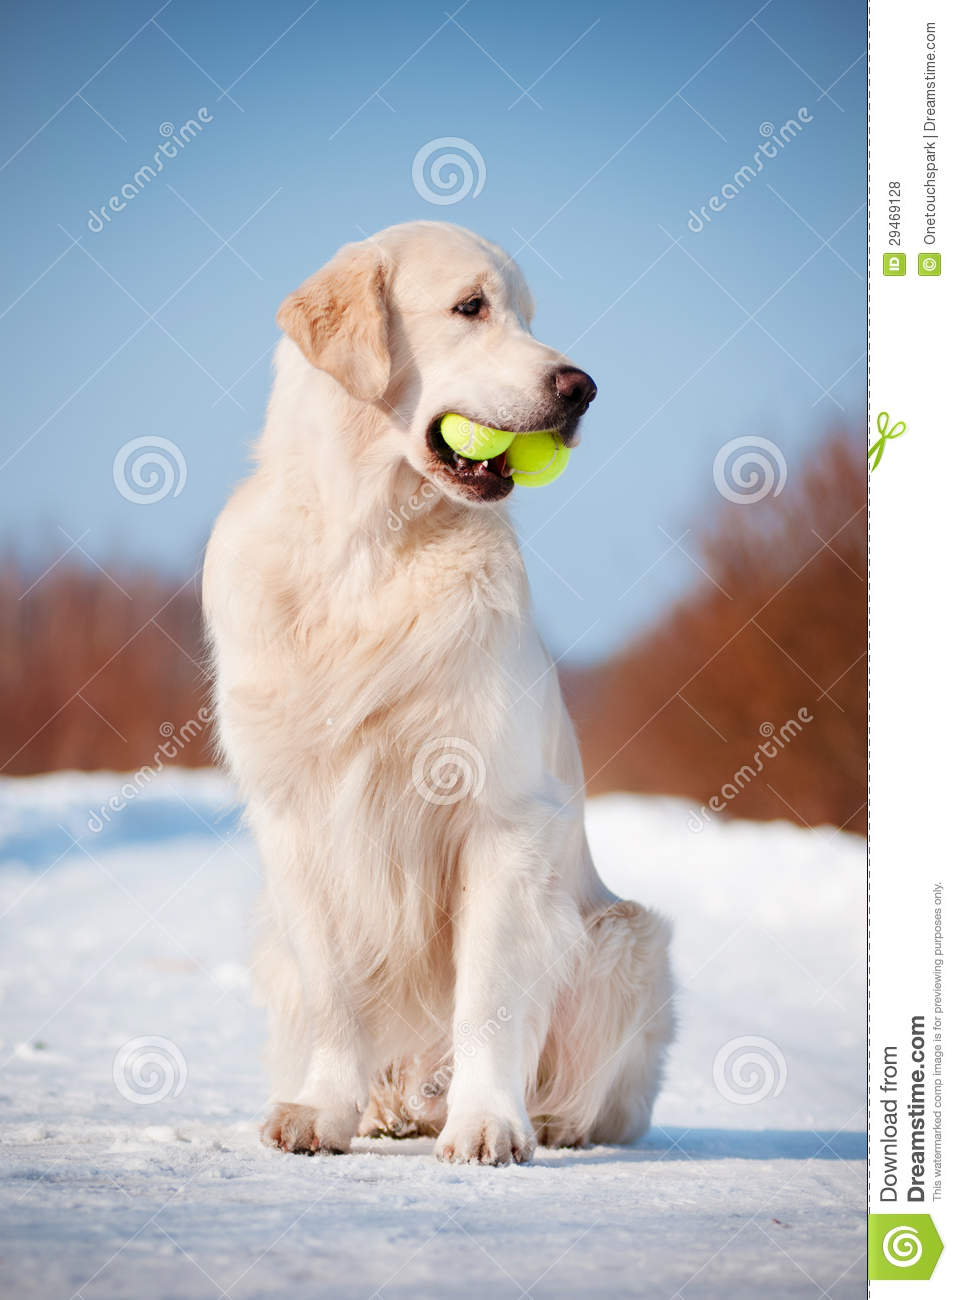 Golden Retriever Dog With A Tennis Ball In His Mouth Stock